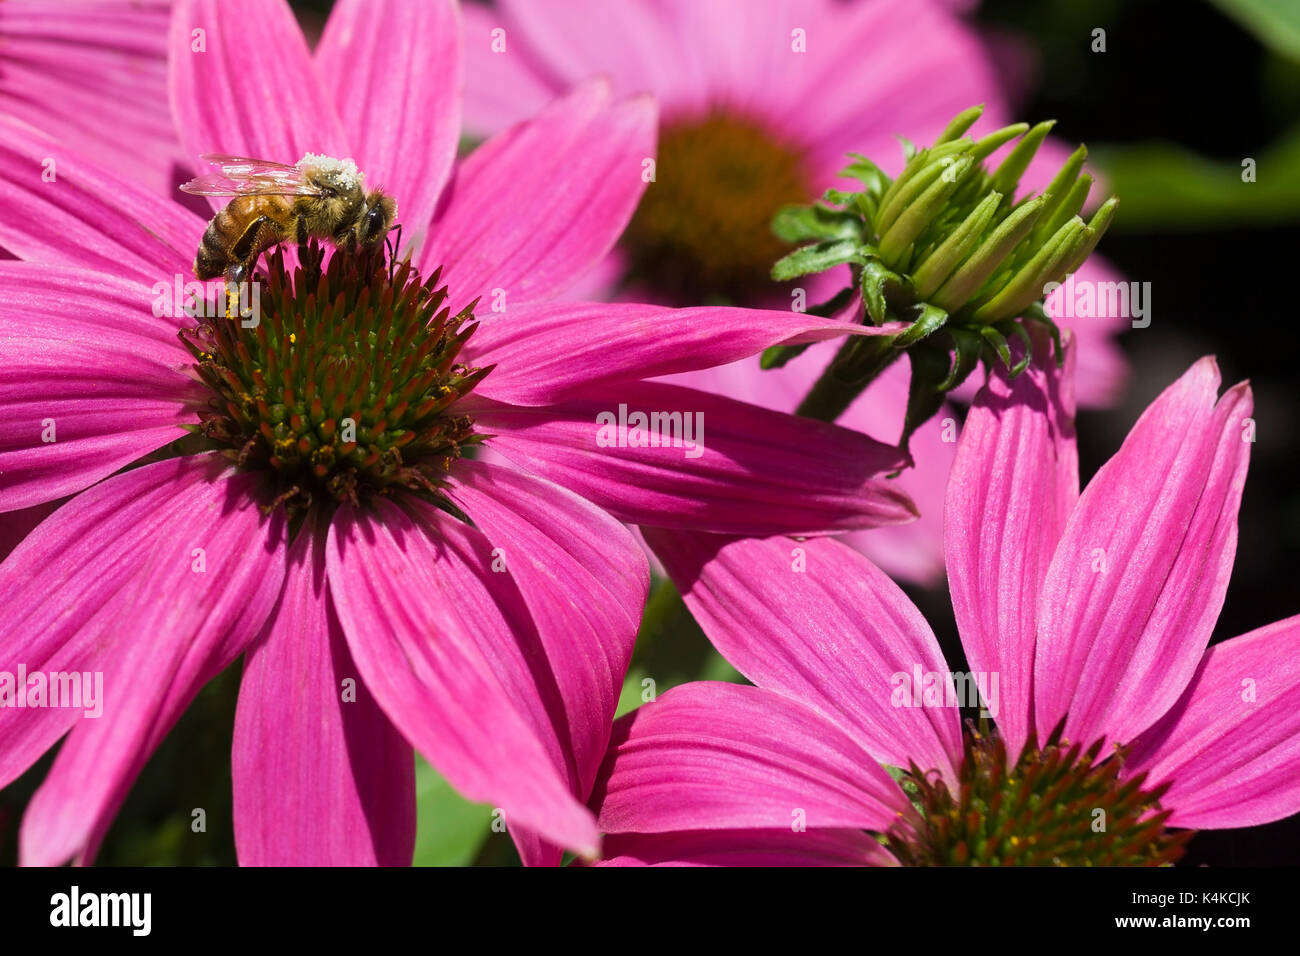 Pollen covered honey bee (Apis mellifera) foraging for nectar on pink Echinacea, Coneflower in summer, Montreal, Quebec, Canada - Stock Image